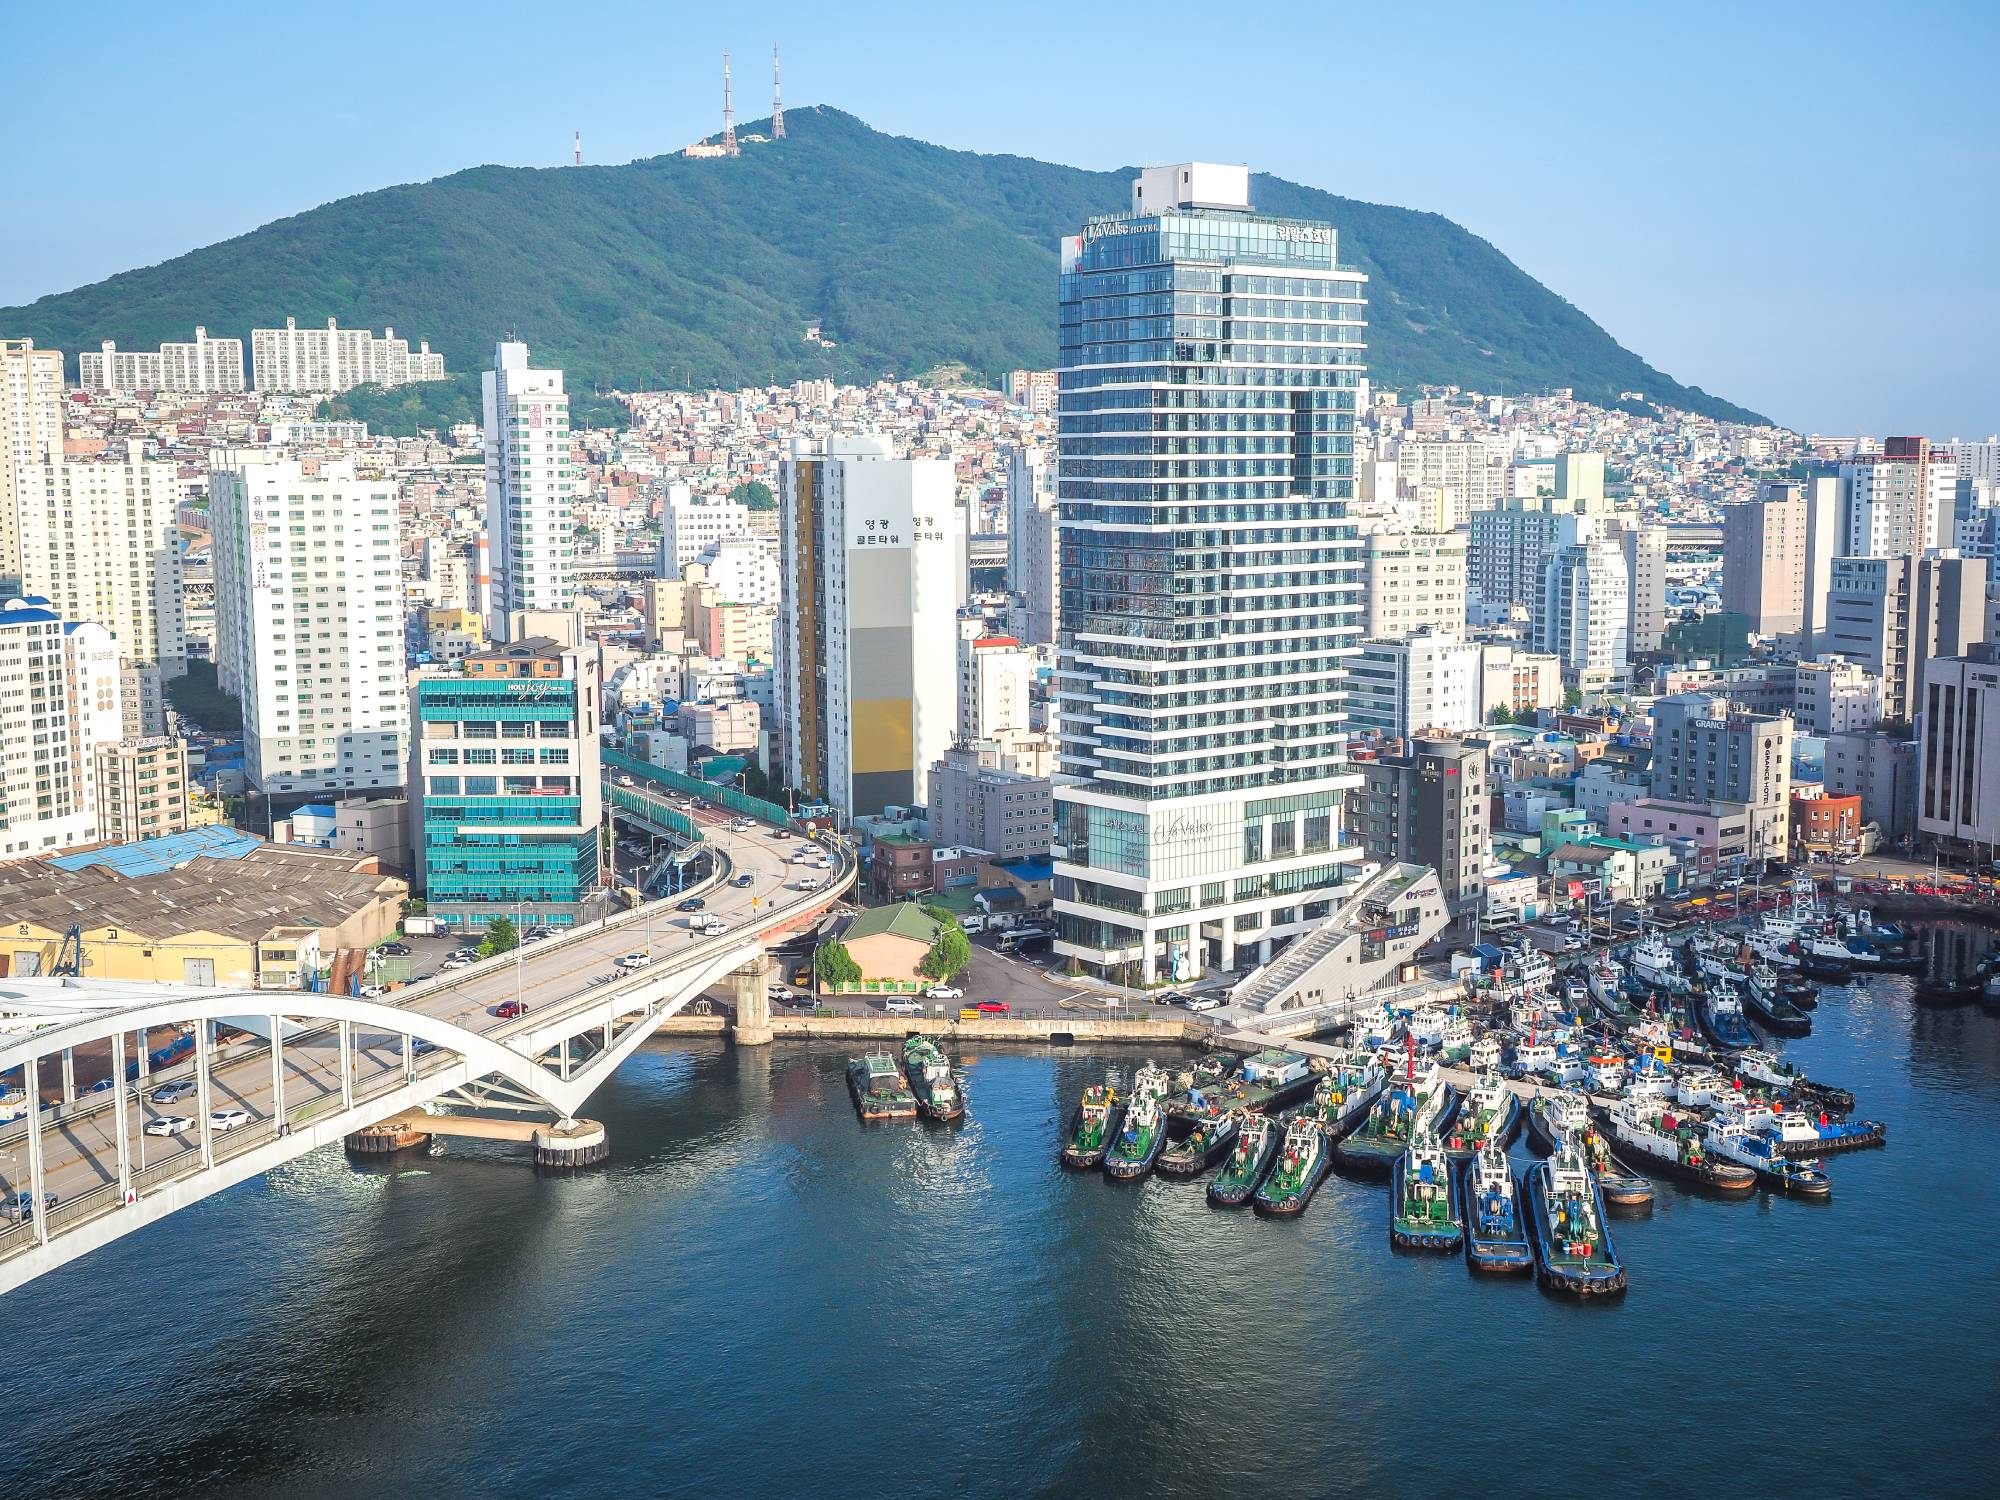 La Valse sits on the tip of Yeongdo Island, where ships pass under Busan Bridge to the Busan Harbor